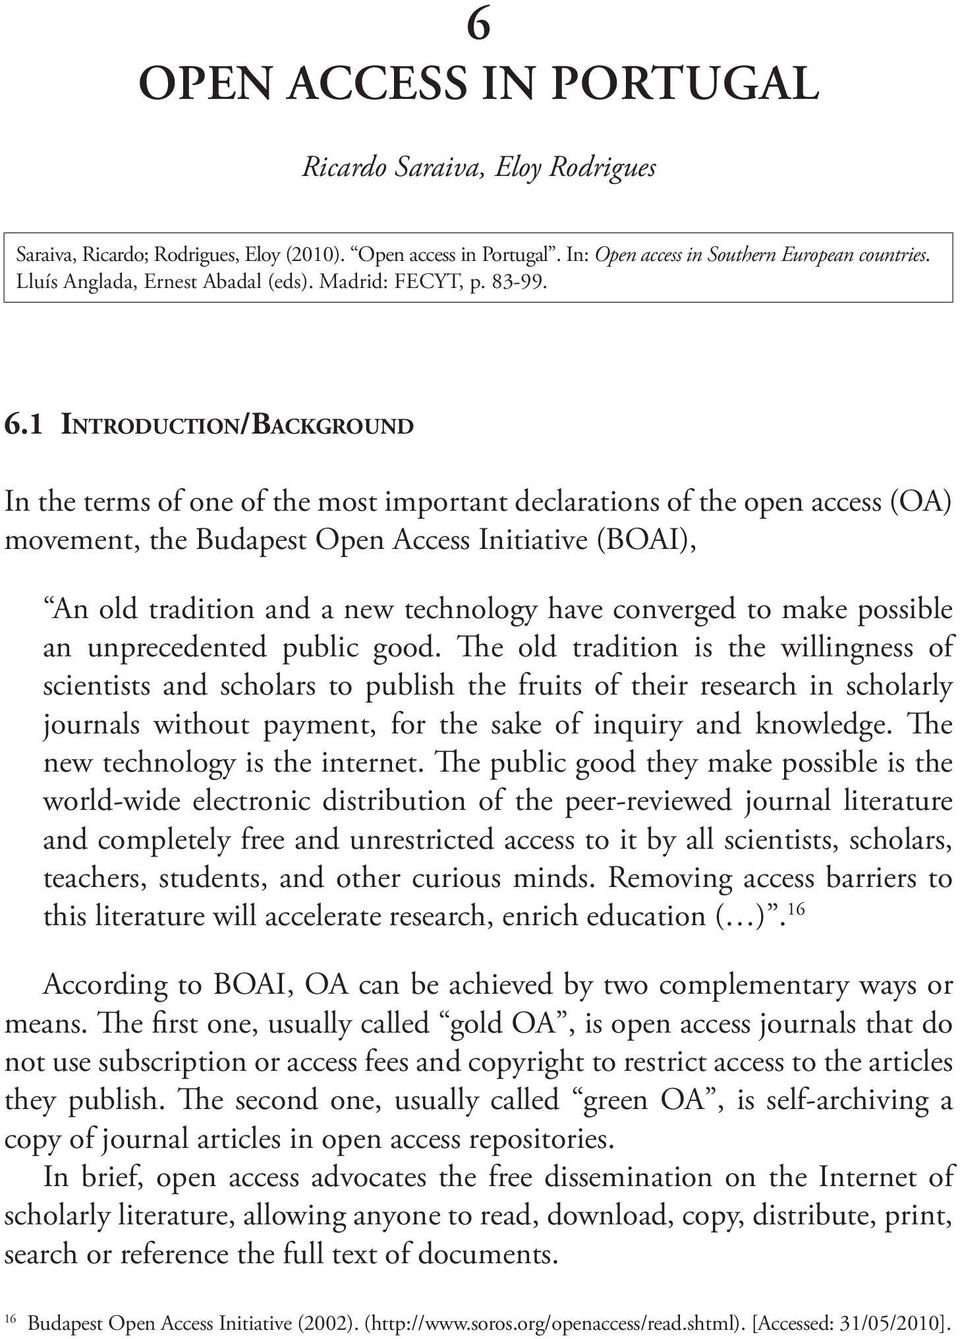 1 Introduction/Background In the terms of one of the most important declarations of the open access (OA) movement, the Budapest Open Access Initiative (BOAI), An old tradition and a new technology